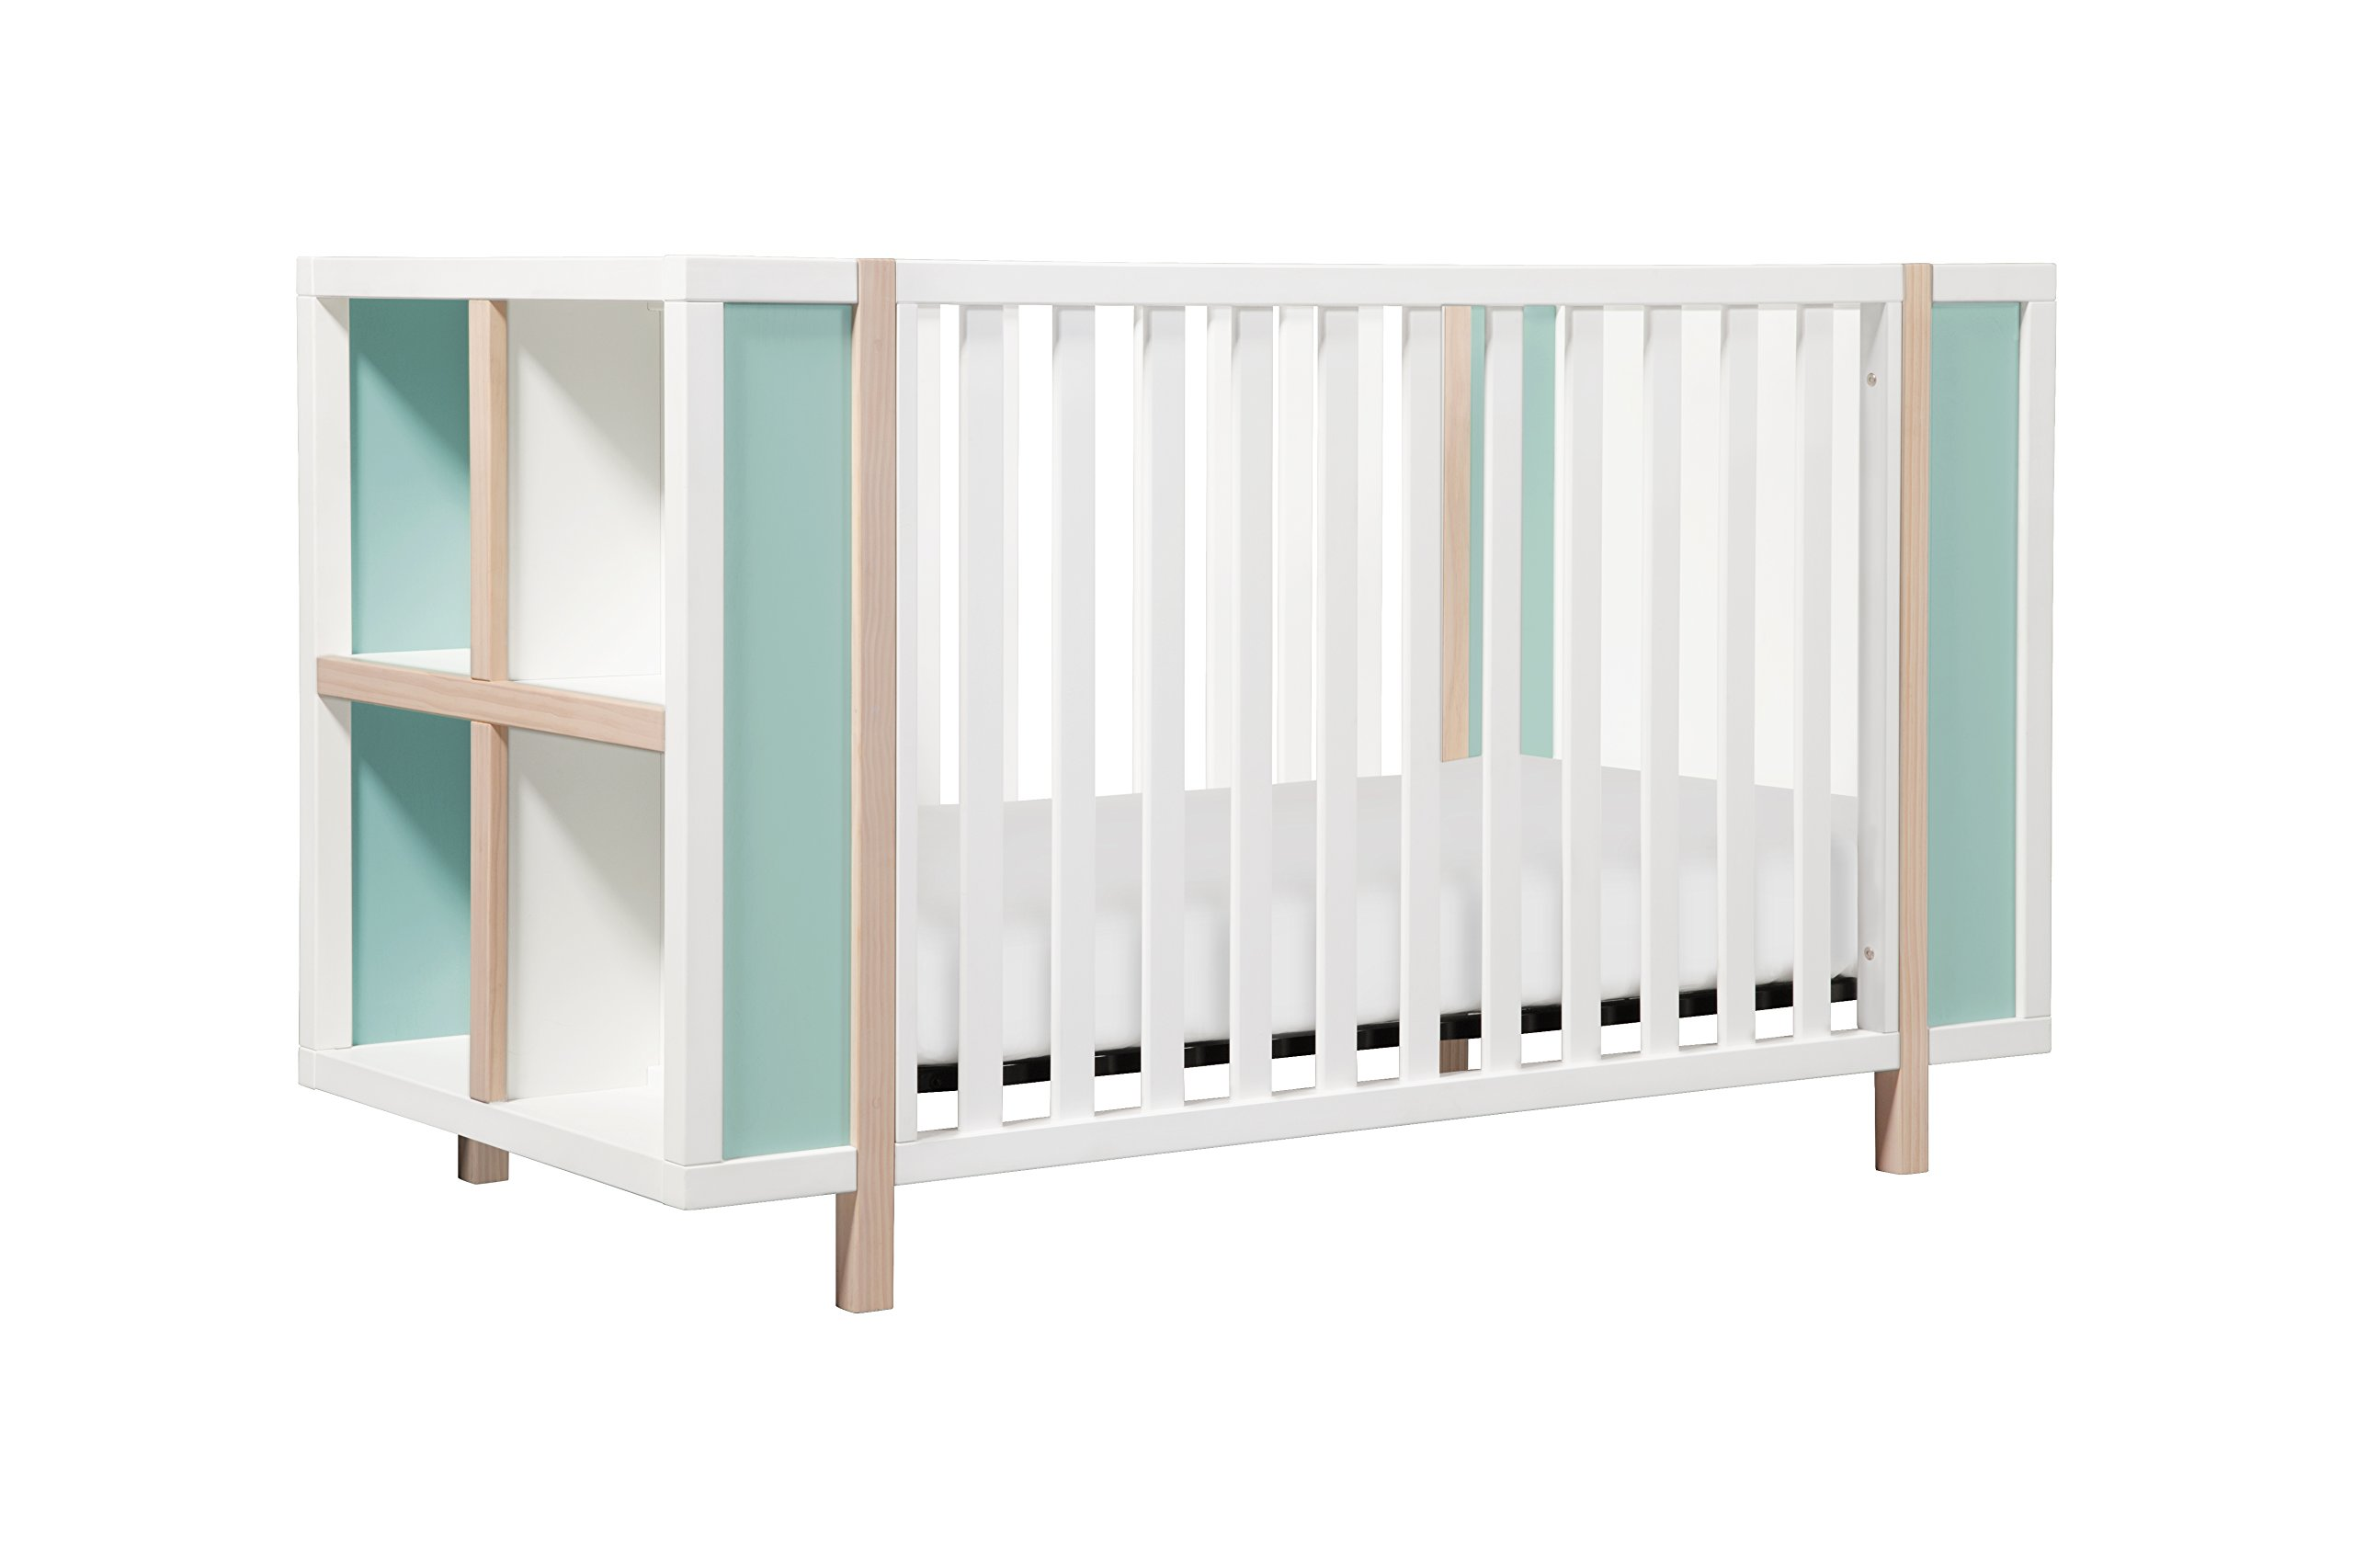 Babyletto Bingo 3-in-1 Convertible Crib and Storage Combo with Toddler Bed Conversion Kit, White / Washed Natural with Cool Mint by babyletto